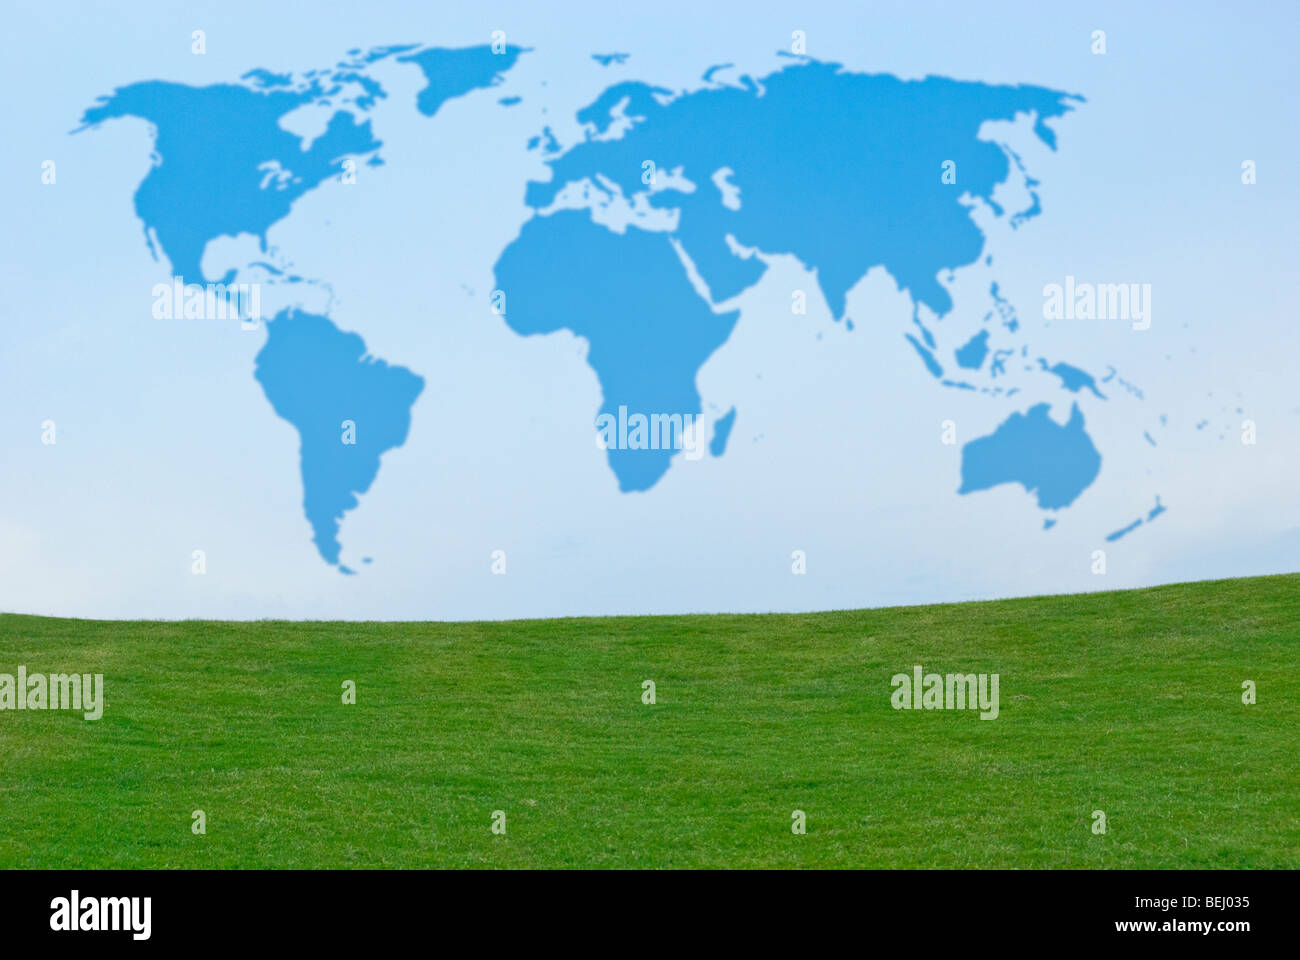 Digital world map countries stock photos digital world map outline of world map in blue sky above green grass stock image gumiabroncs Gallery